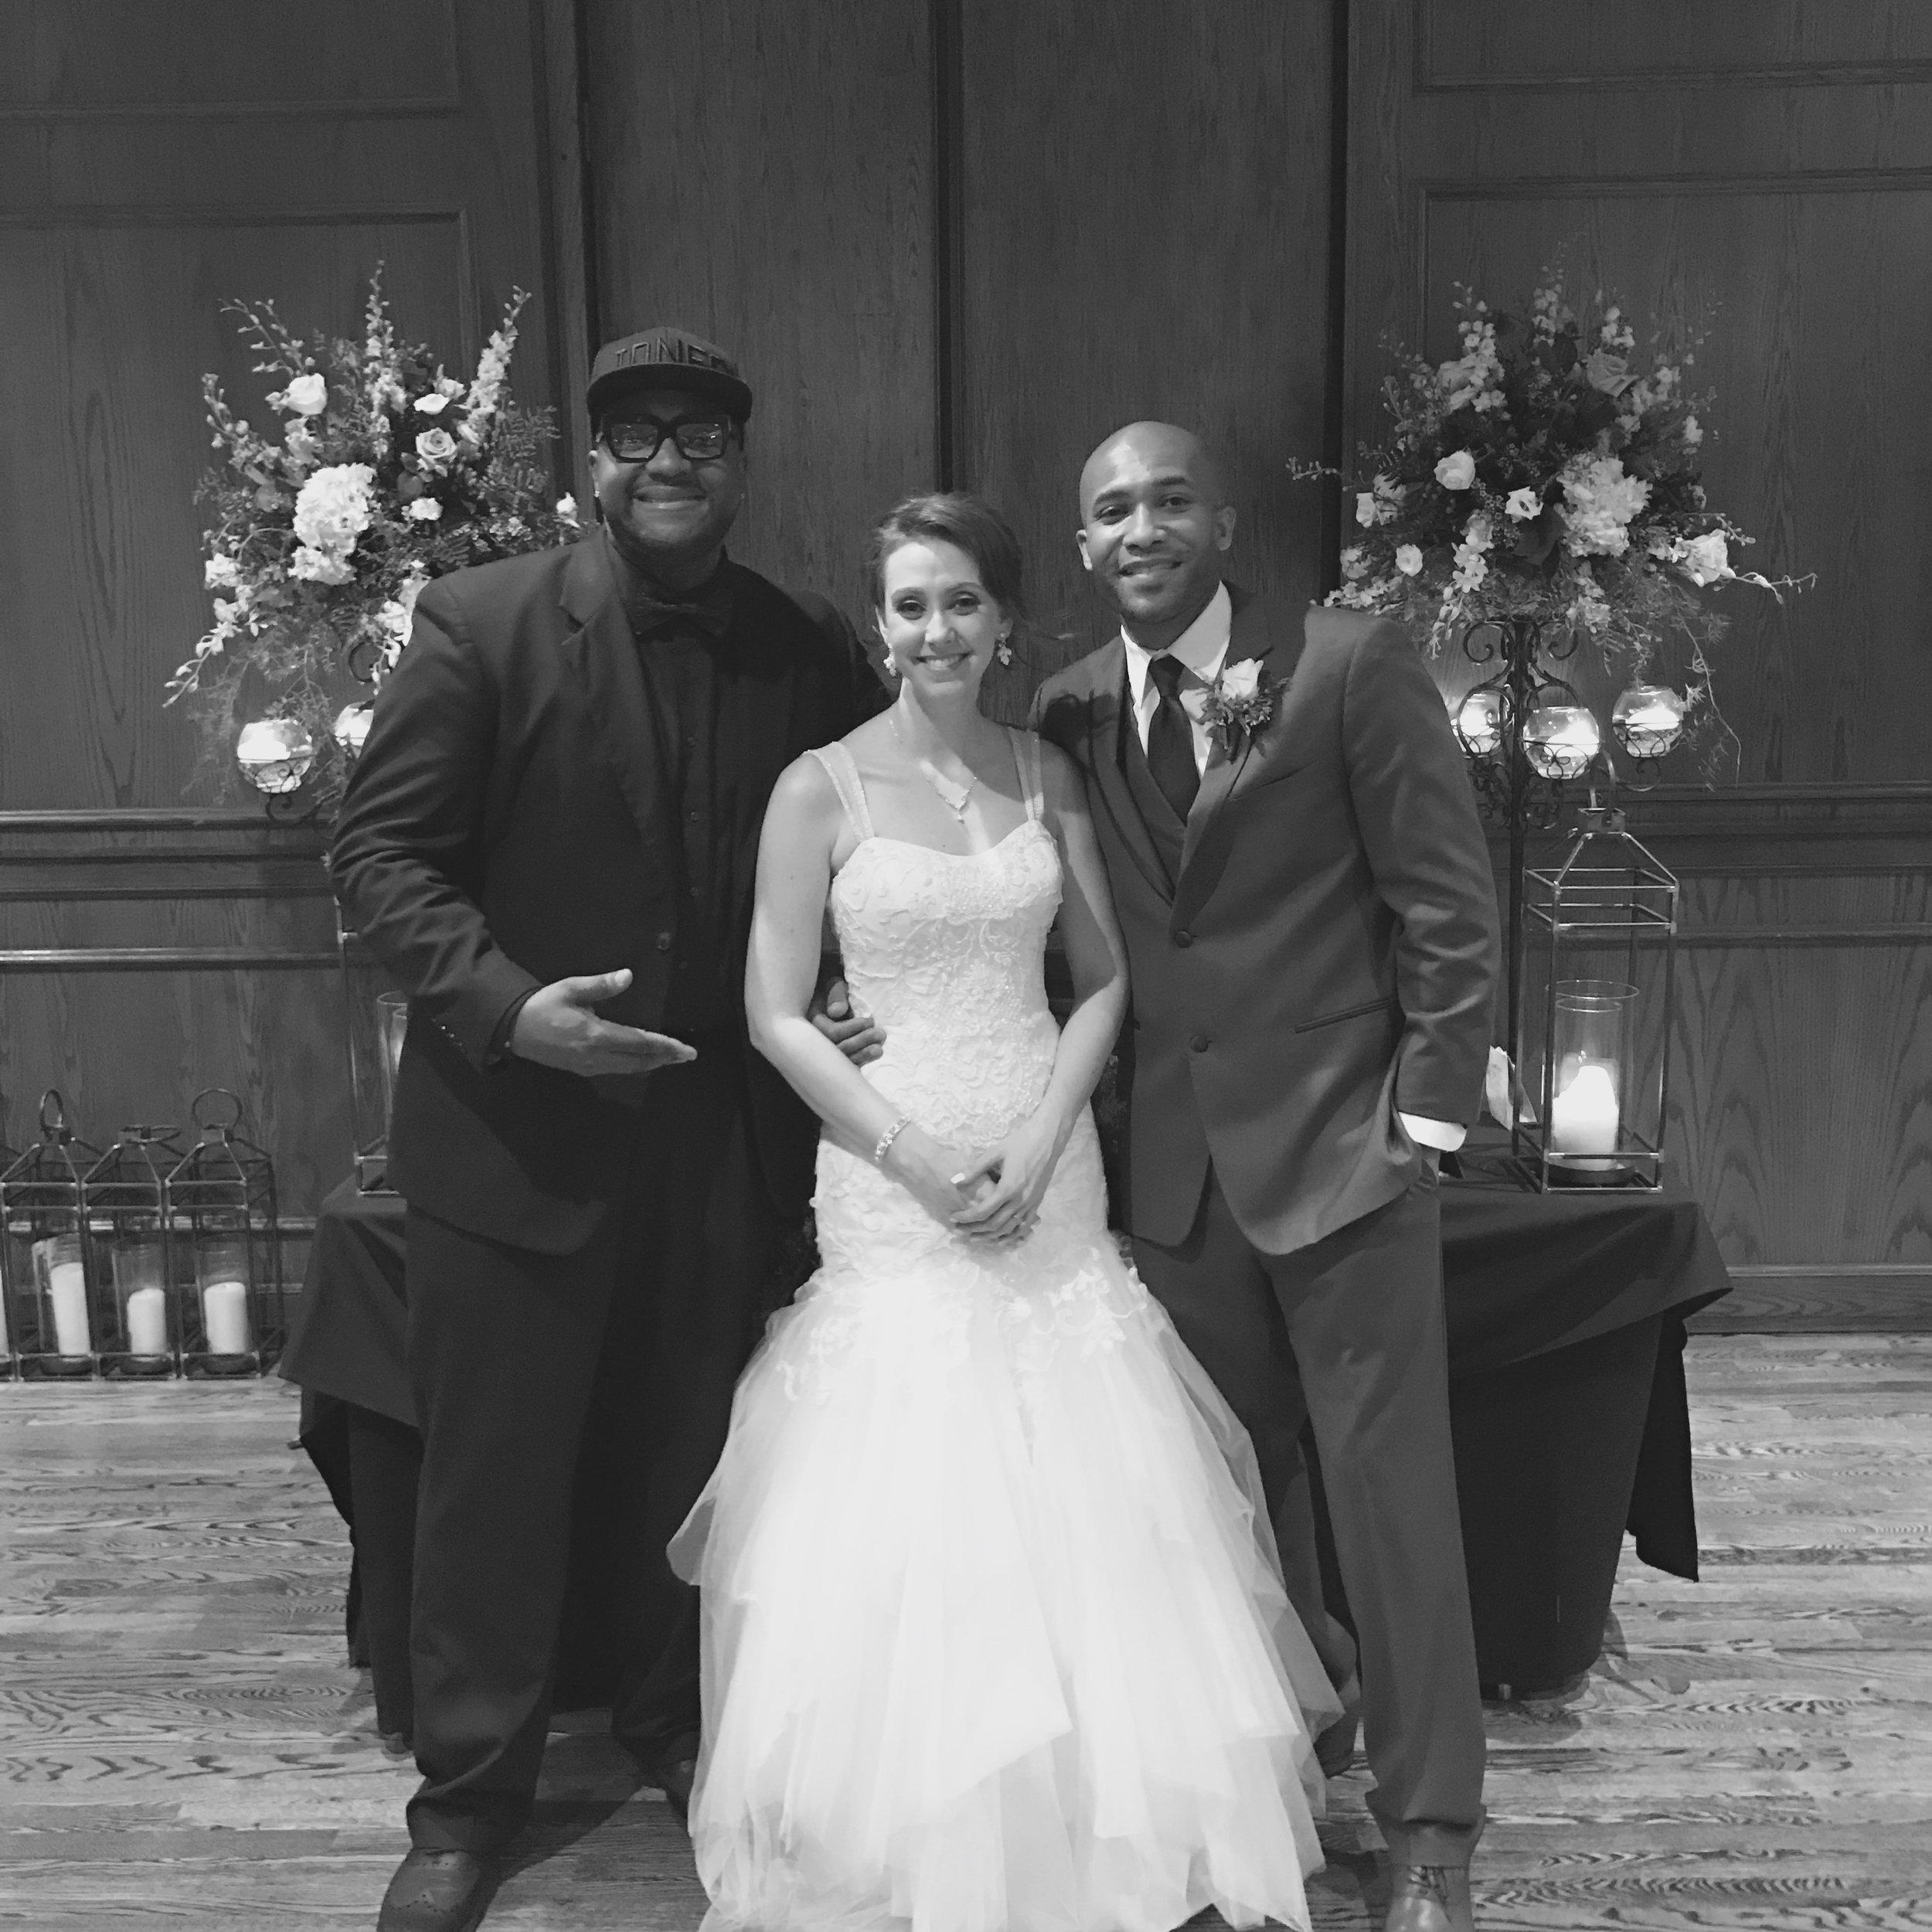 Buerster Ivy Wedding by dj d jones Maggianos oak brook.jpg